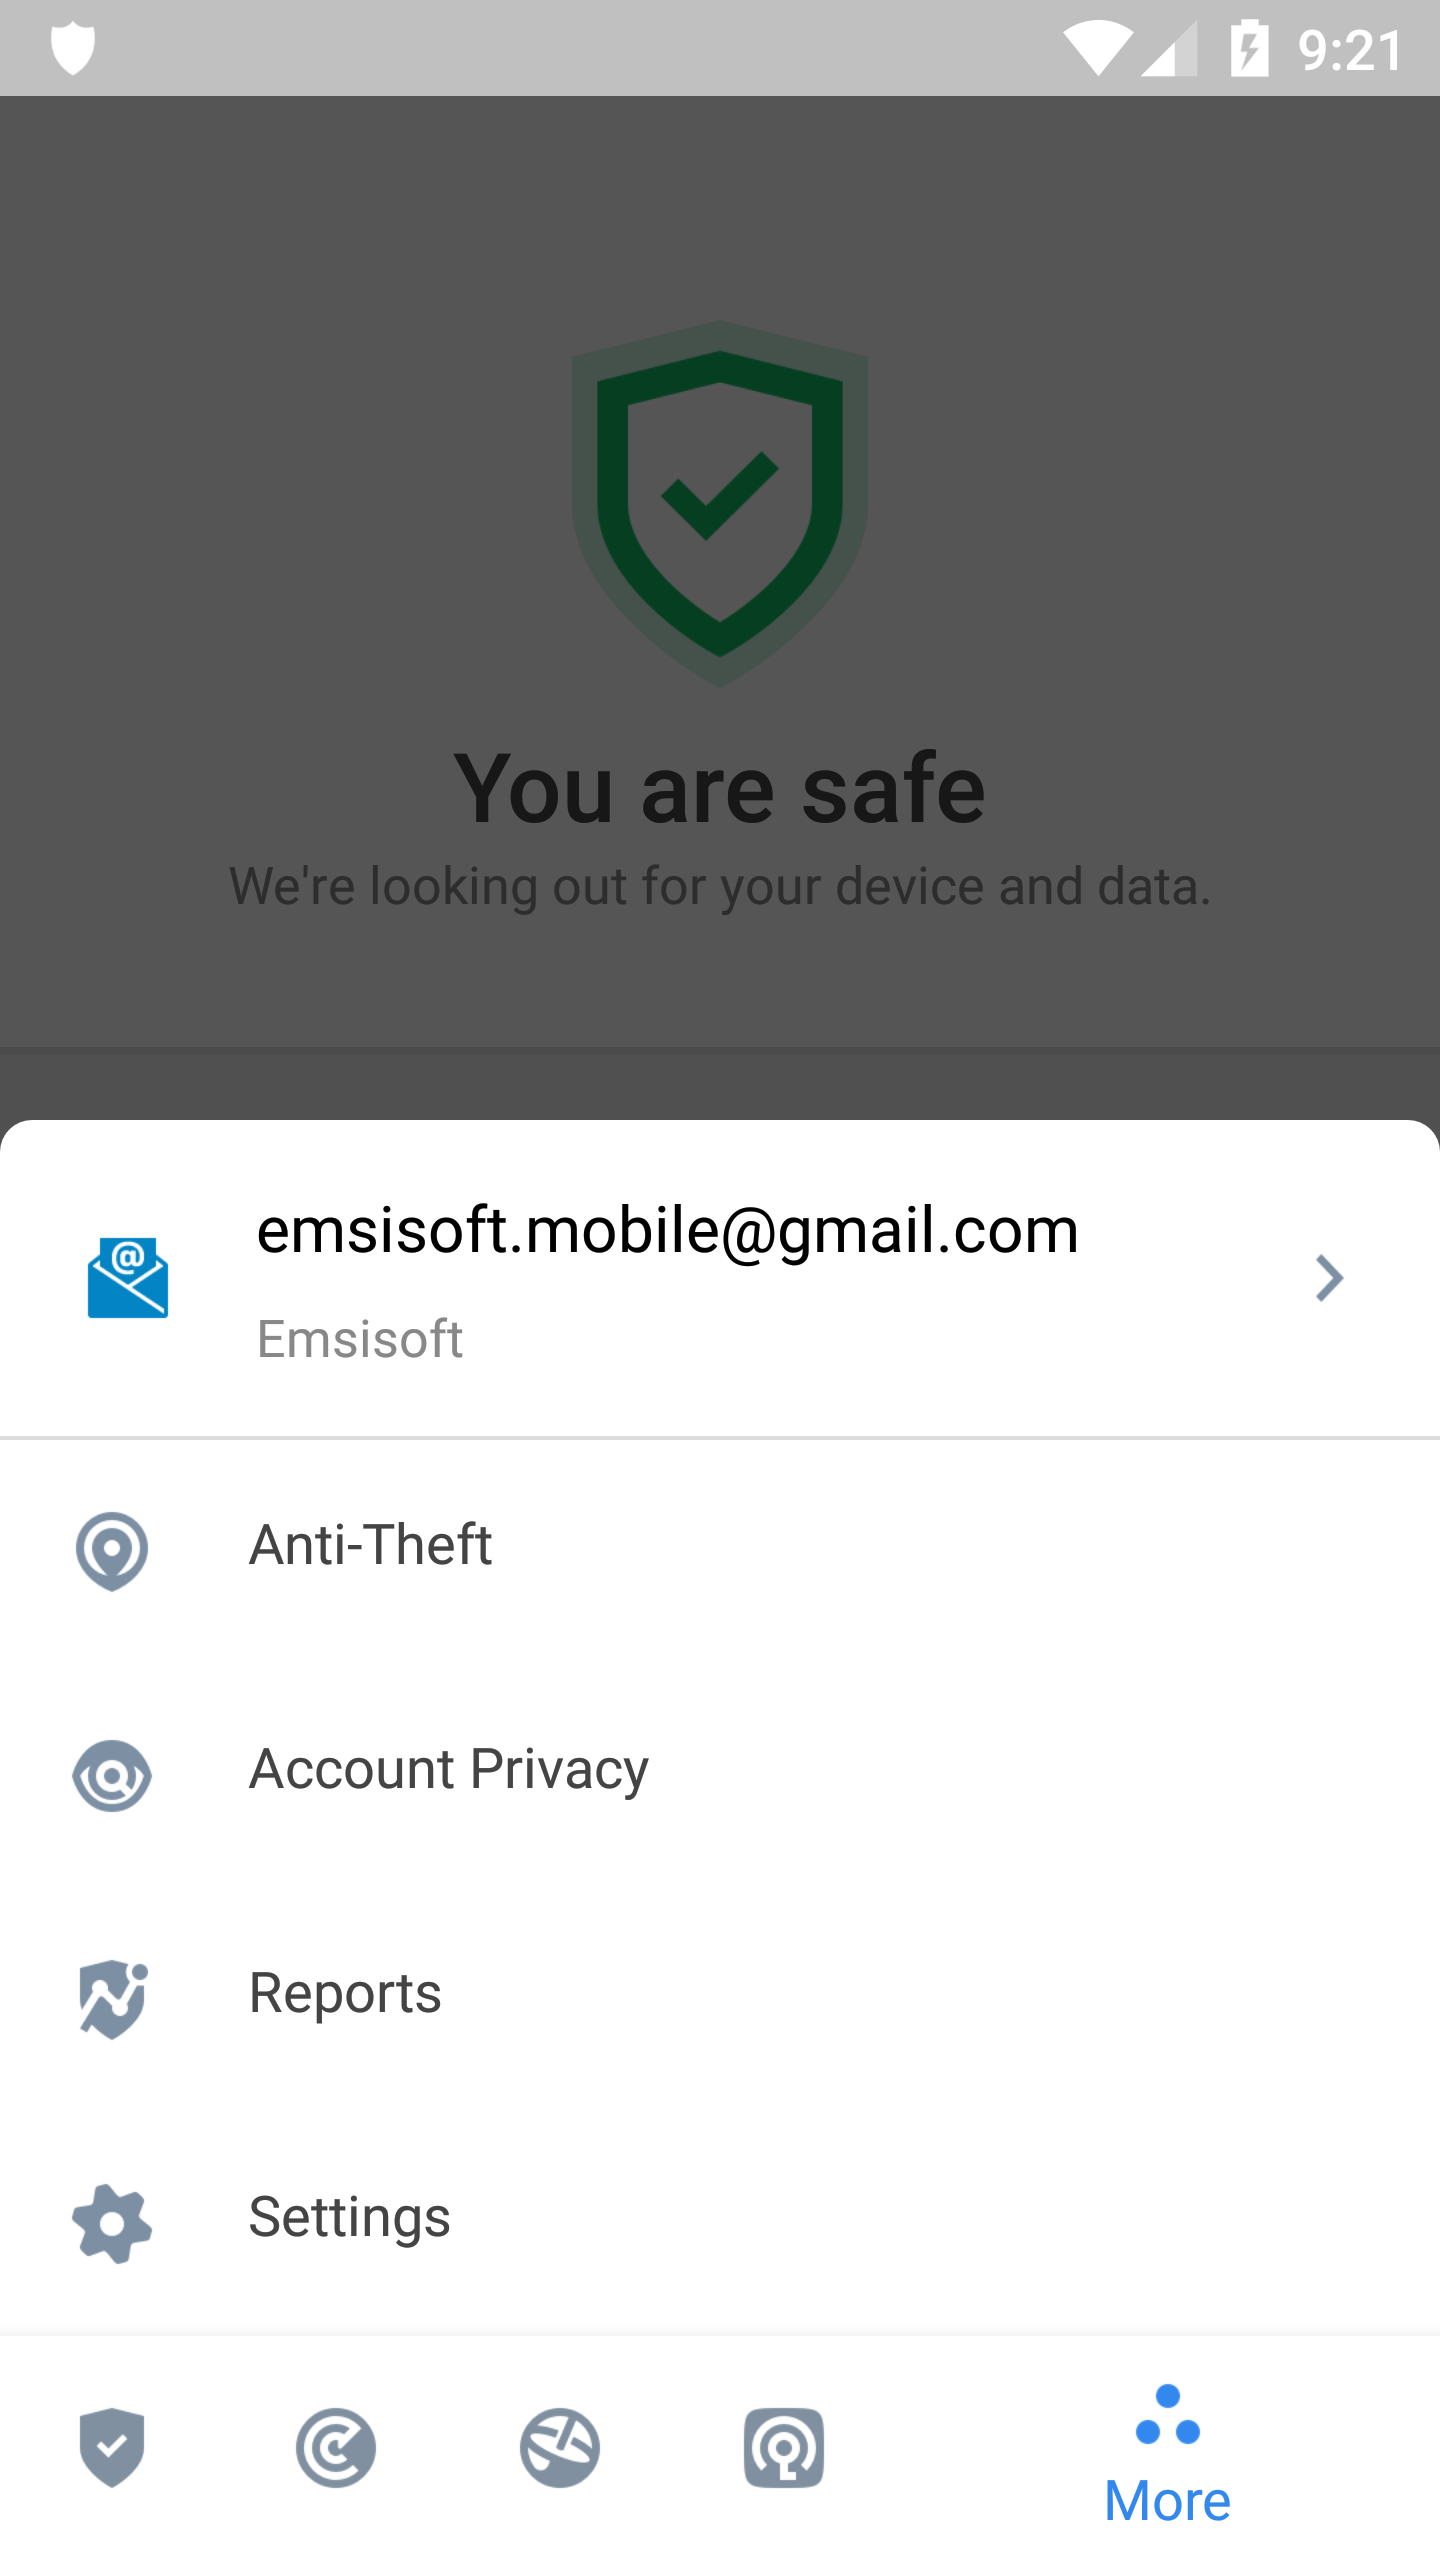 Emsisoft | Anti-Malware: Lightweight Malware Protection for the Home